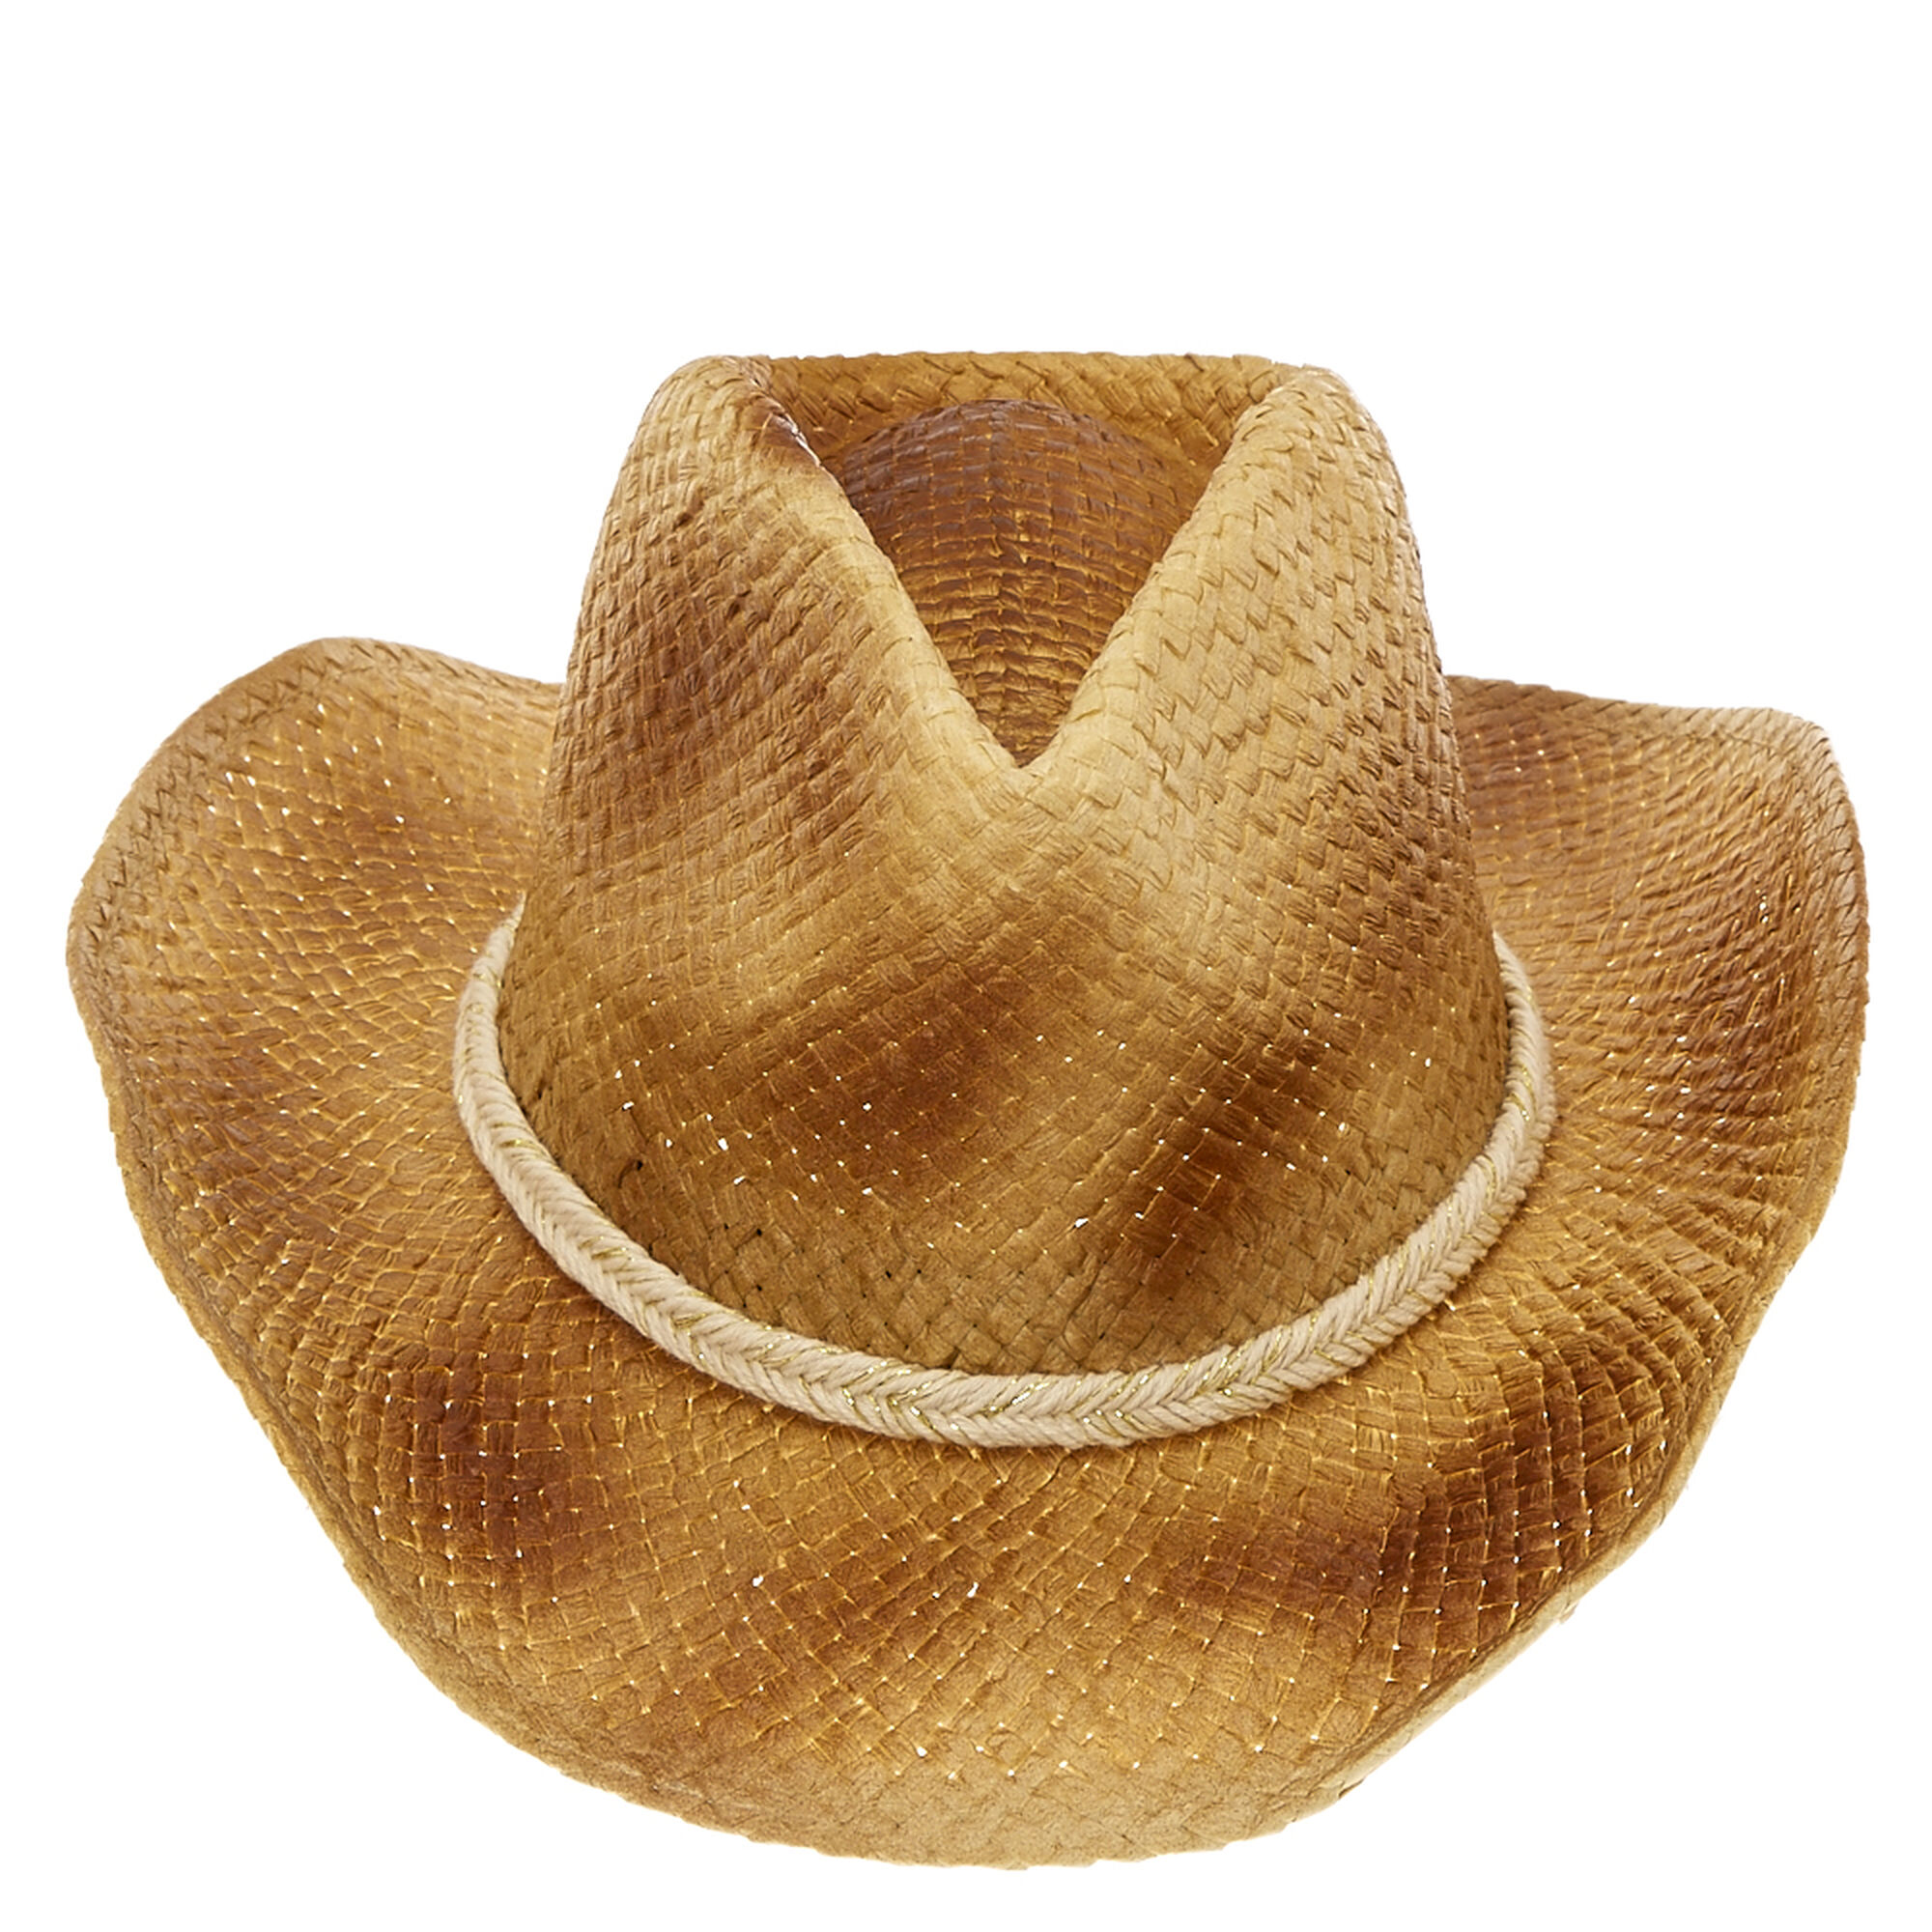 Cheap Straw Cowboy Hats For Sale - Parchment N Lead ccc46ae487b